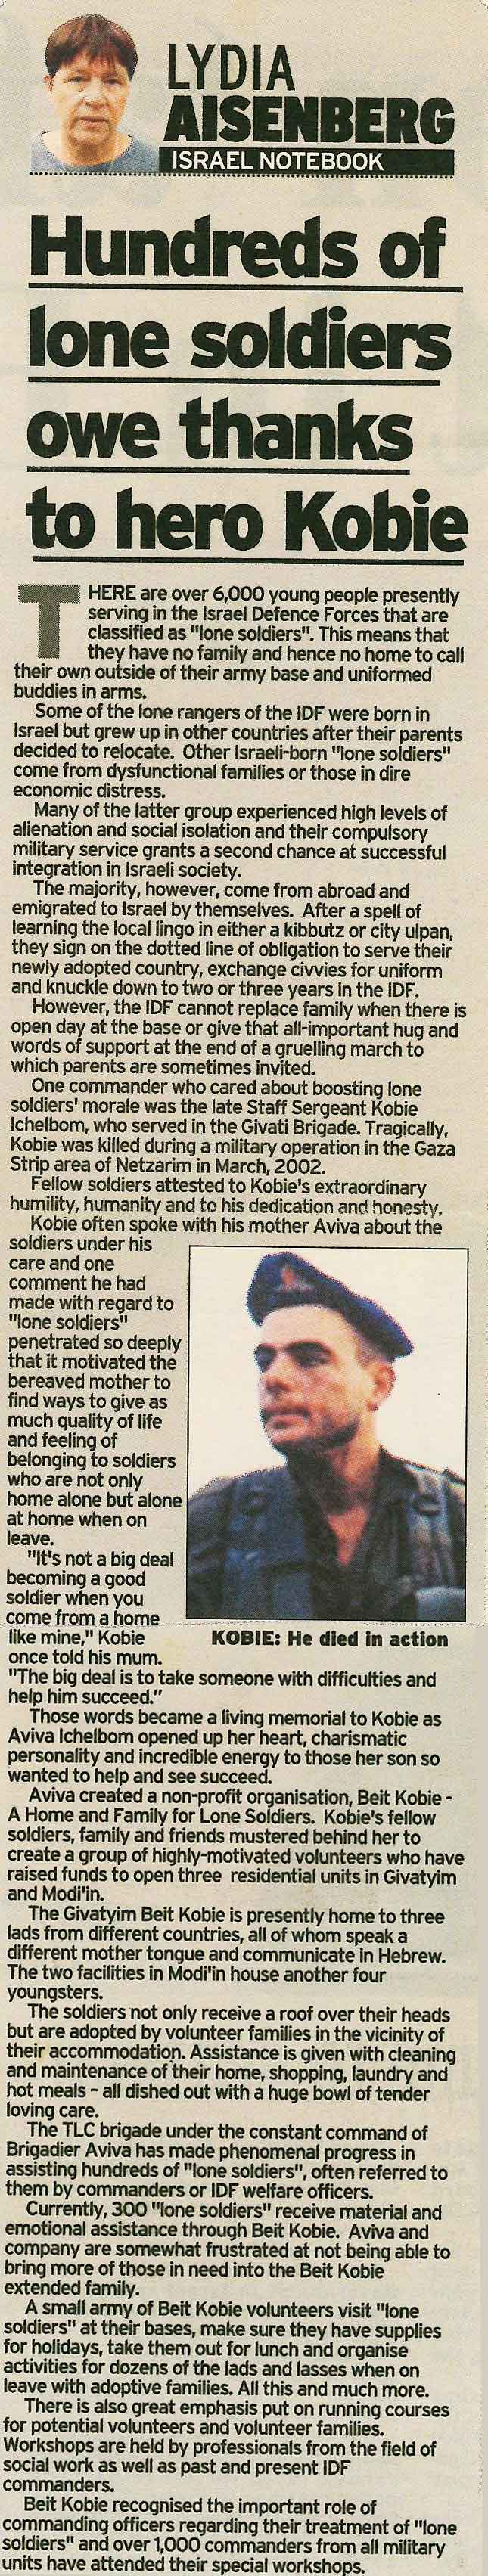 Hundreds of lone soldiers owe thanks to hero Kobie